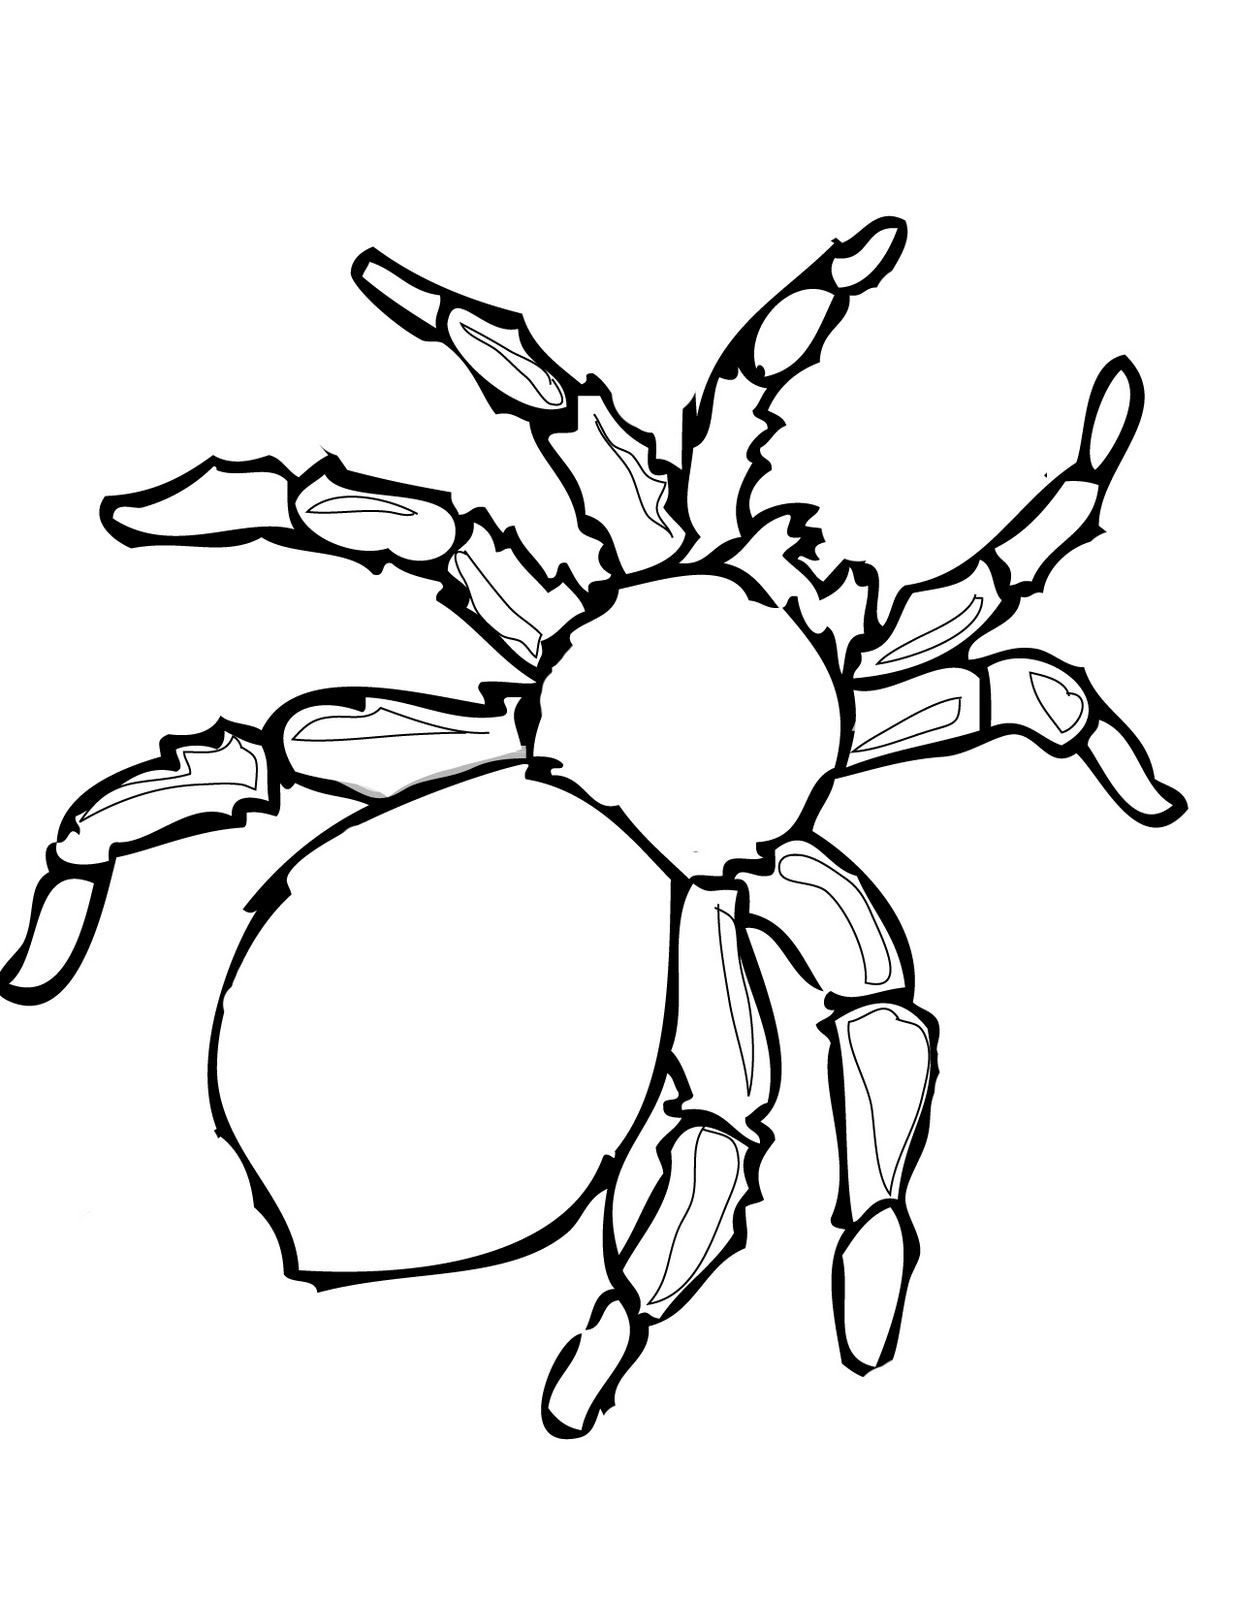 picture relating to Spider Printable identify Printable Halloween Decoration Cutouts Spiders Spider